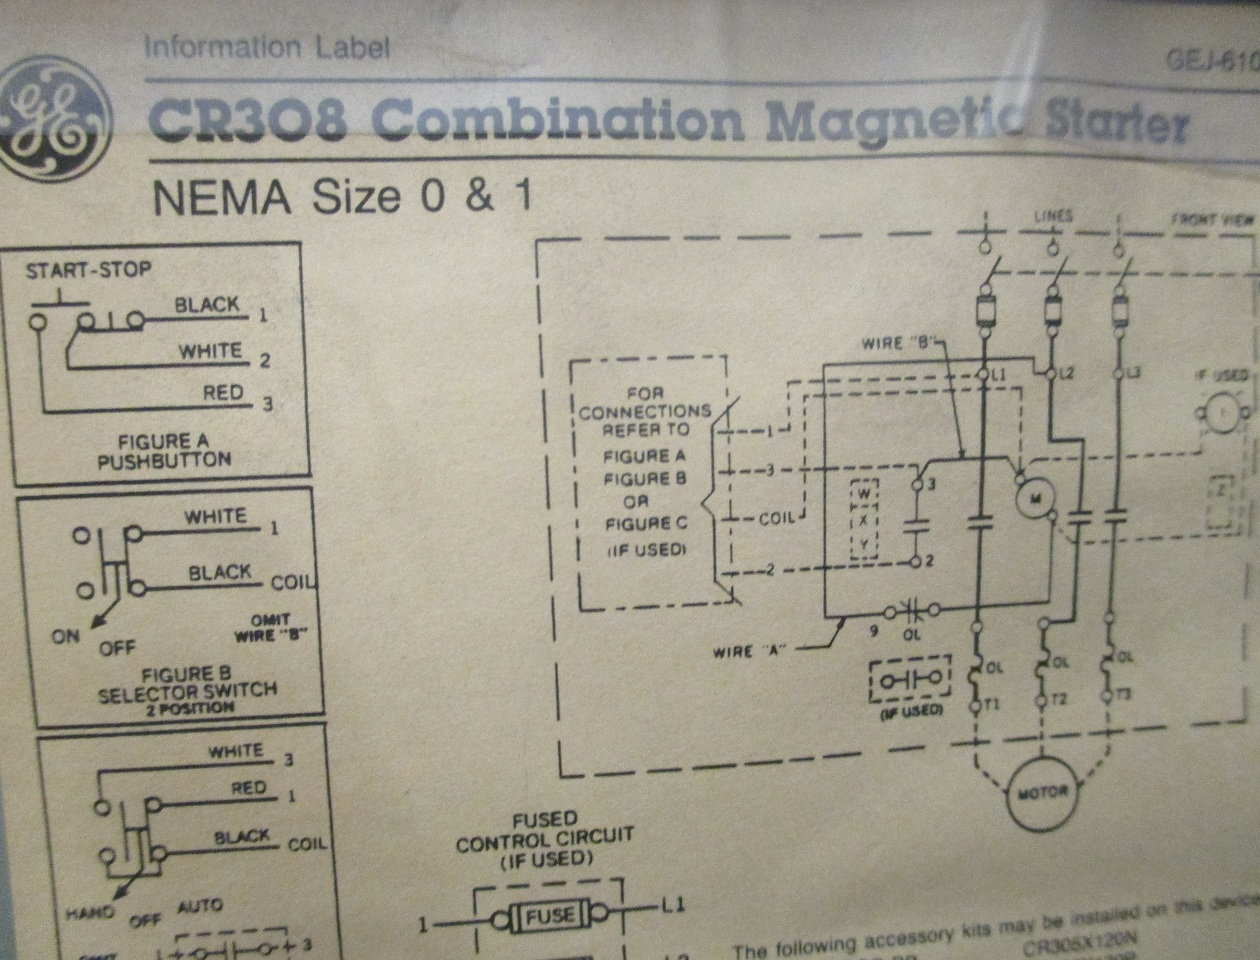 dis3585 ge combination magnetic starter cr308 600v max complete enclosure 300 line control 3?resize\=665%2C507 ge cr 308 motor starter wiring diagram wiring diagrams  at pacquiaovsvargaslive.co